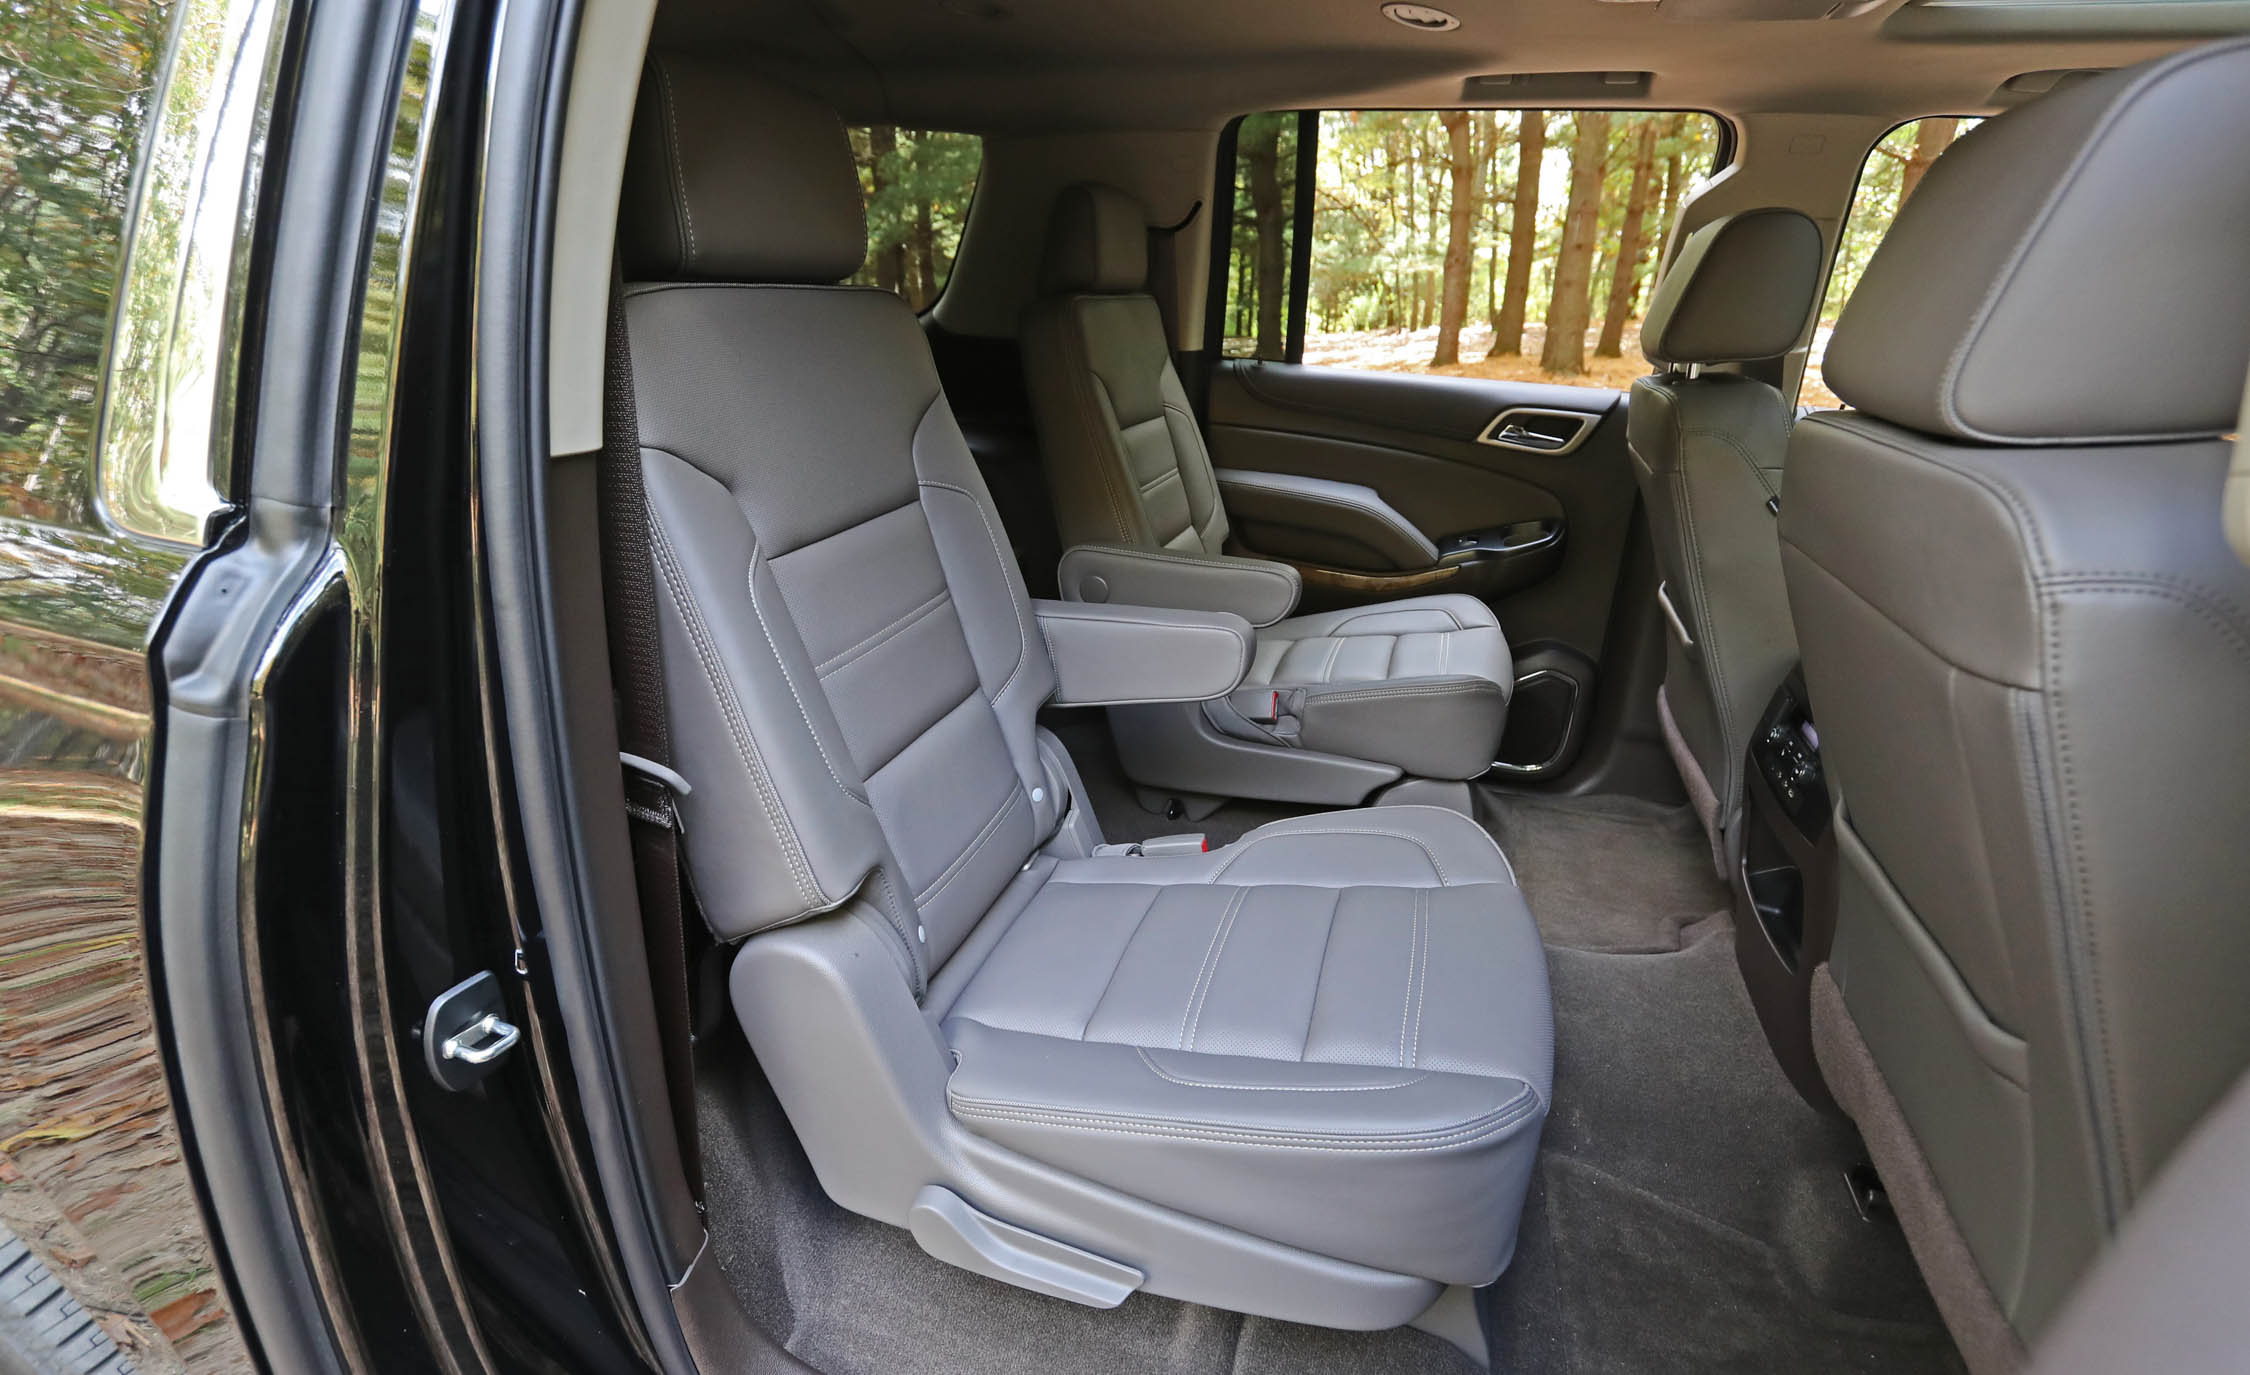 2017 Gmc Yukon Xl Denali Interior Seats Rear Back 2nd Passengers (Photo 19 of 26)